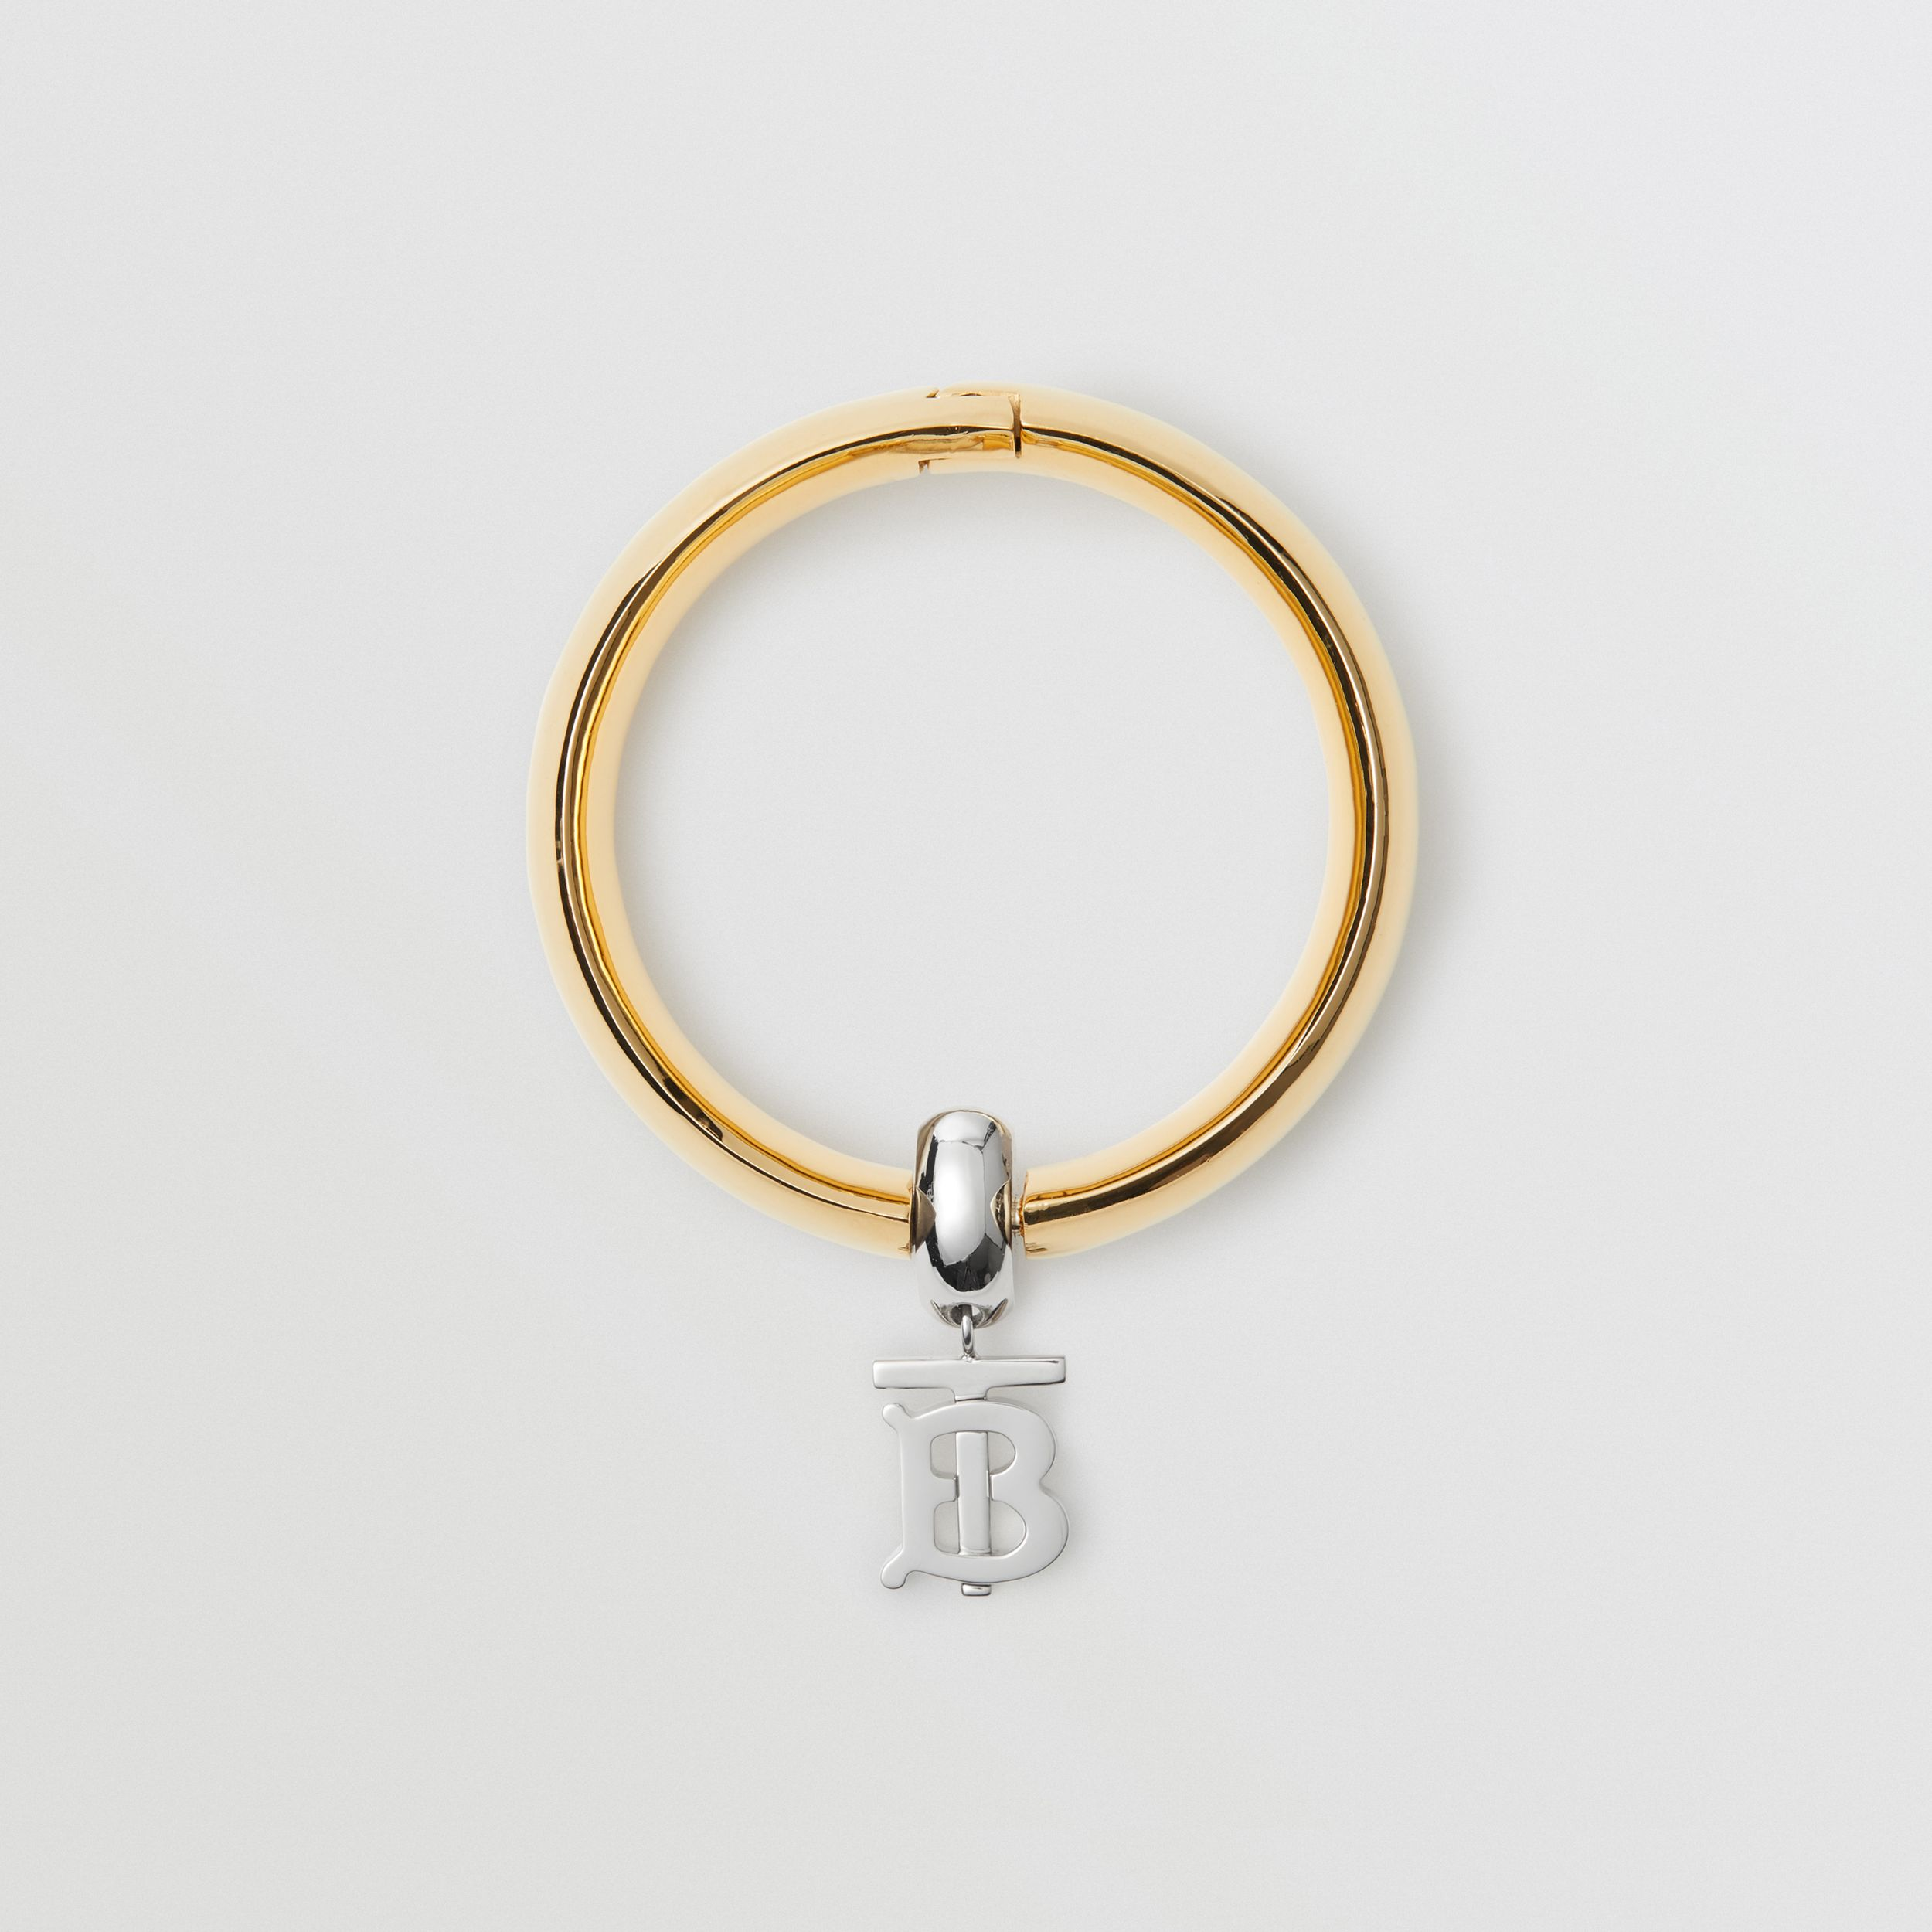 Gold-plated Monogram Motif Bangle in Light - Women | Burberry - 1